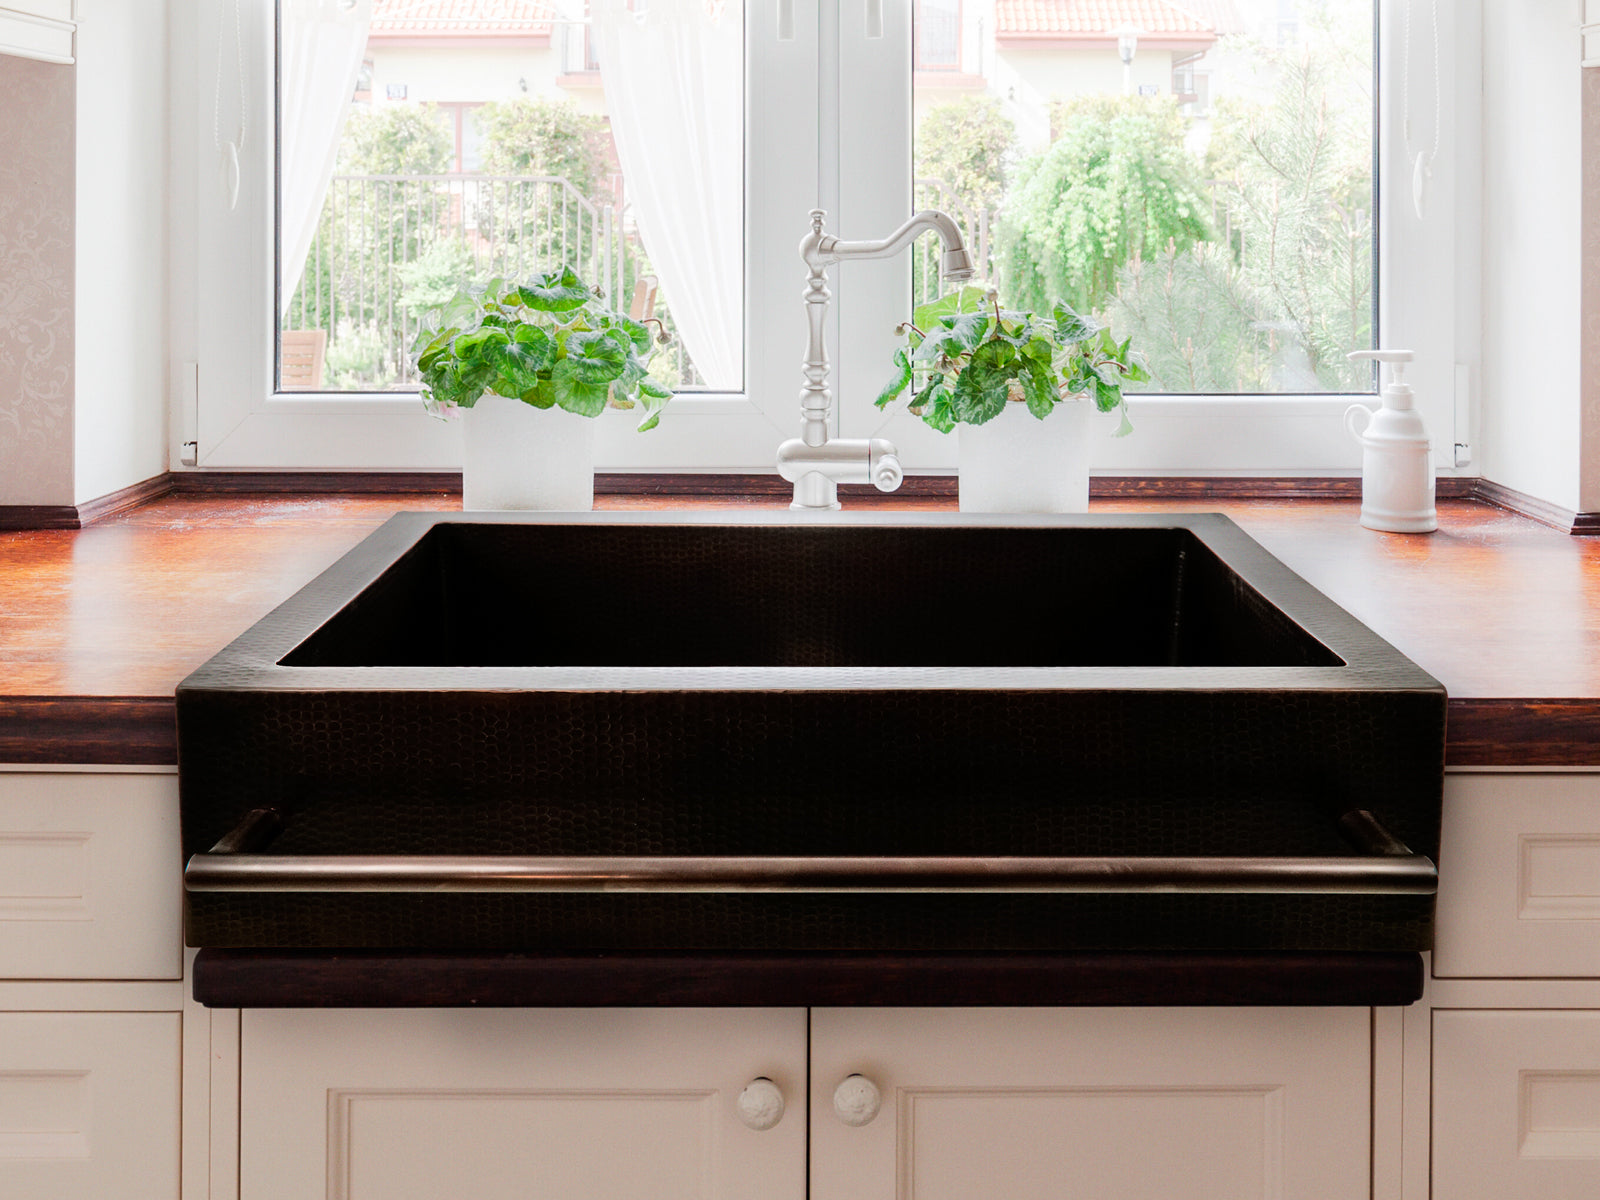 Copper Farmhouse Kitchen Sink Squared Towellbar Design